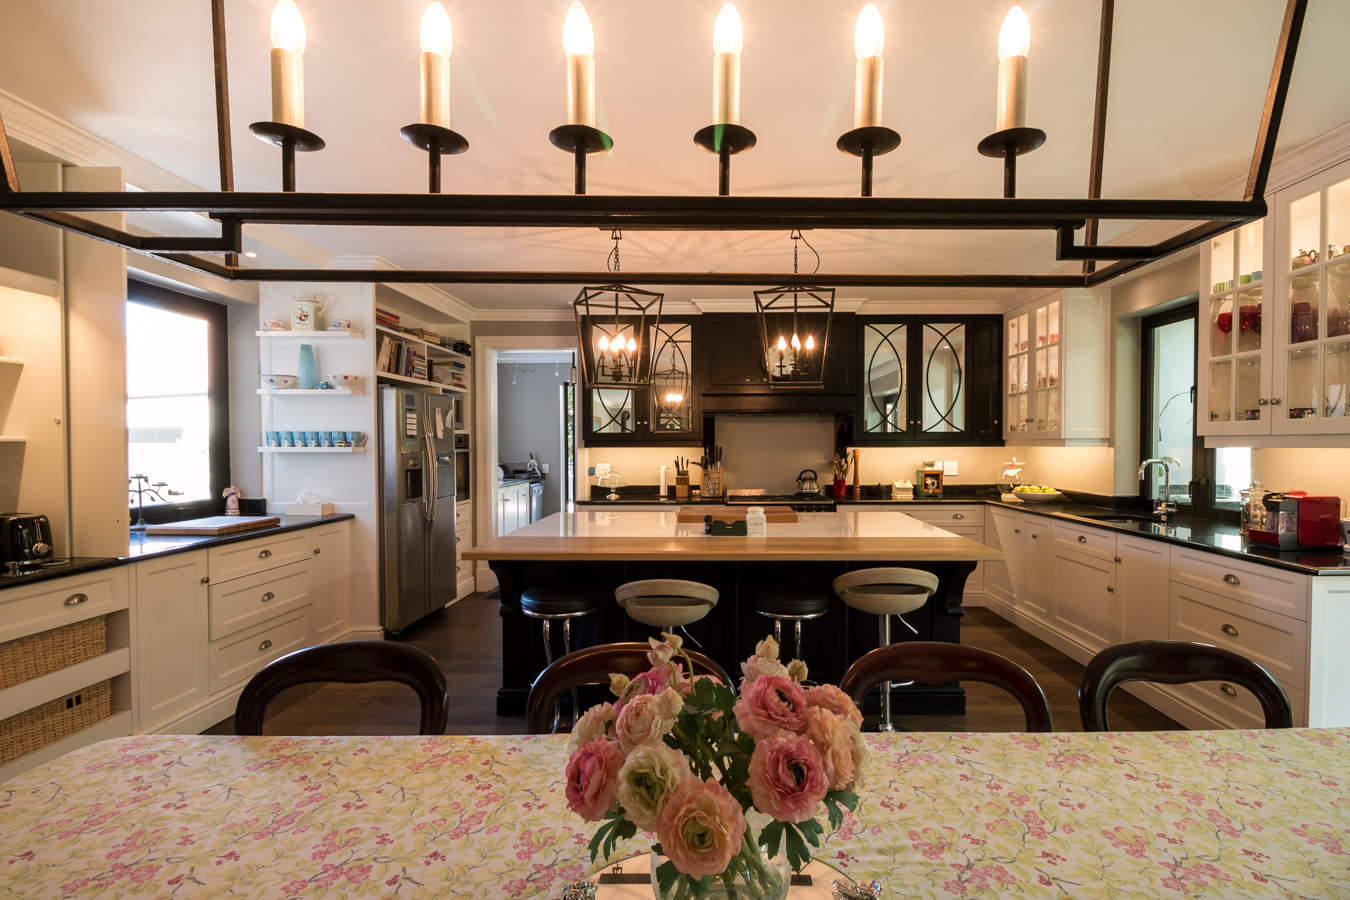 Constantia living design home renovation specialists for Kitchen design specialists colorado springs